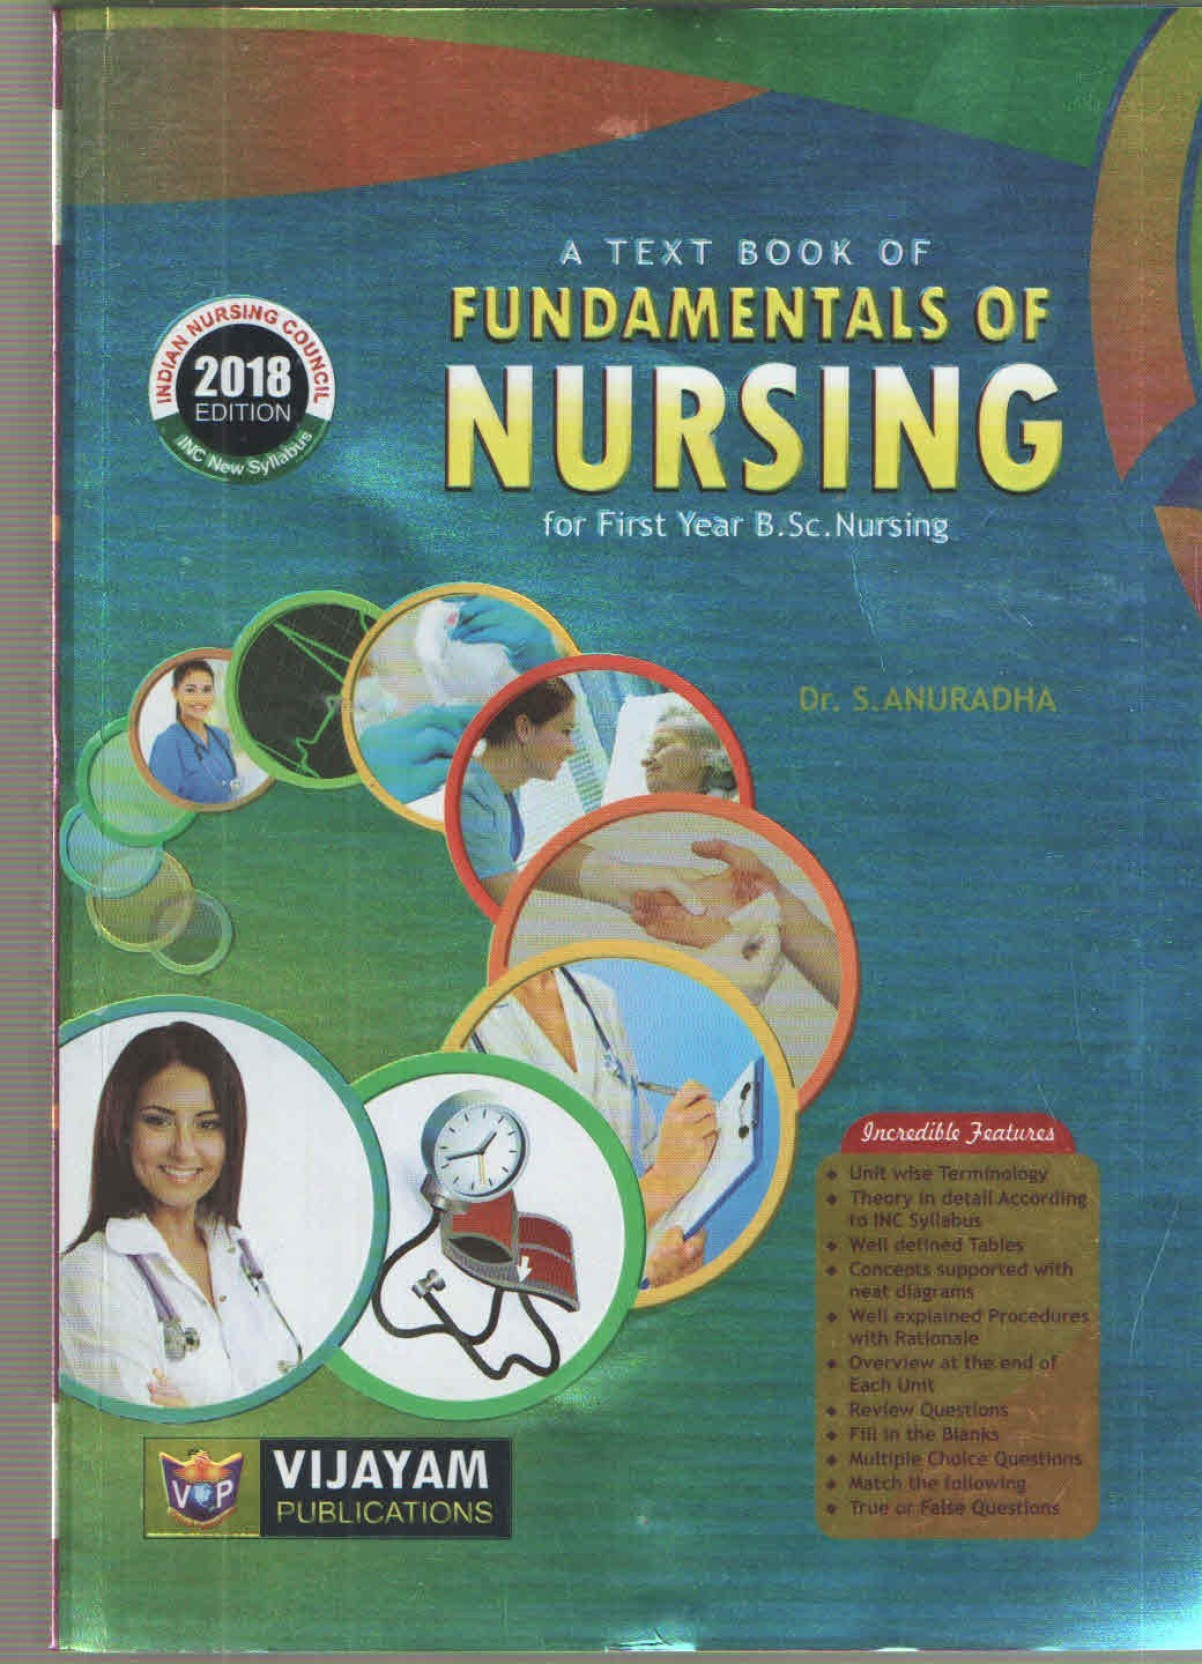 Text Book of Fundamental of Nursing (Bsc): Buy Text Book of